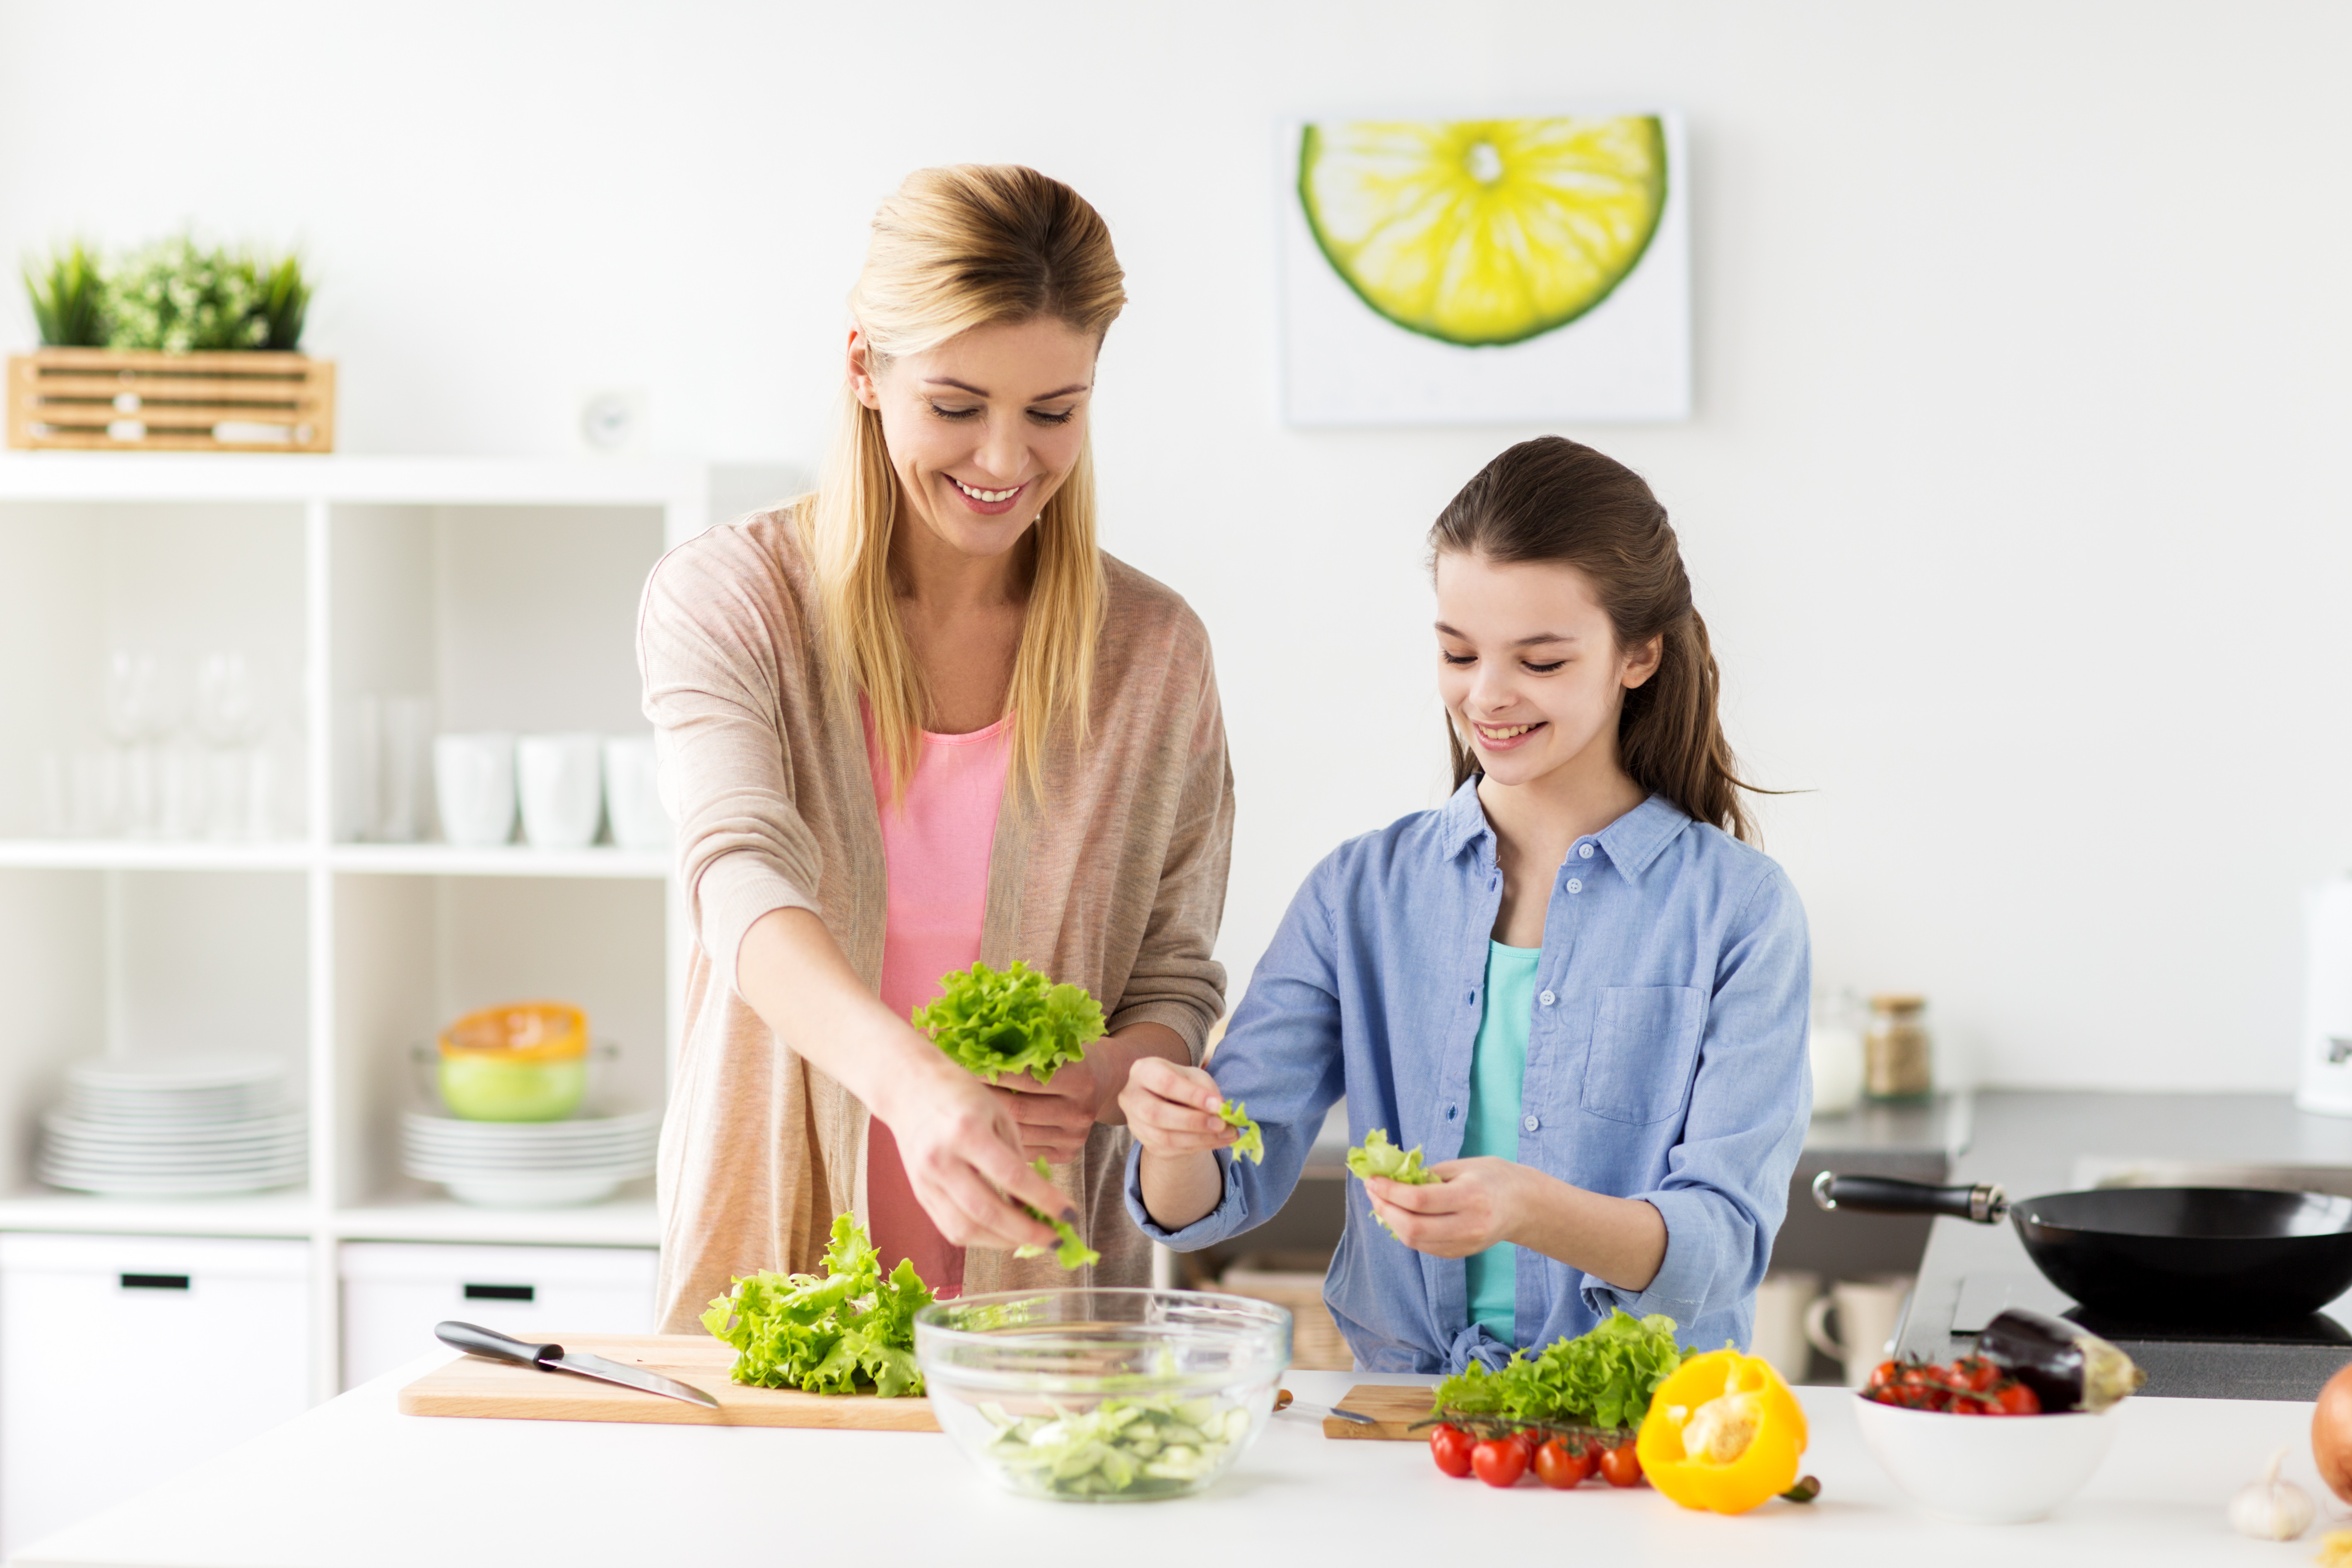 Family and children's nutrition